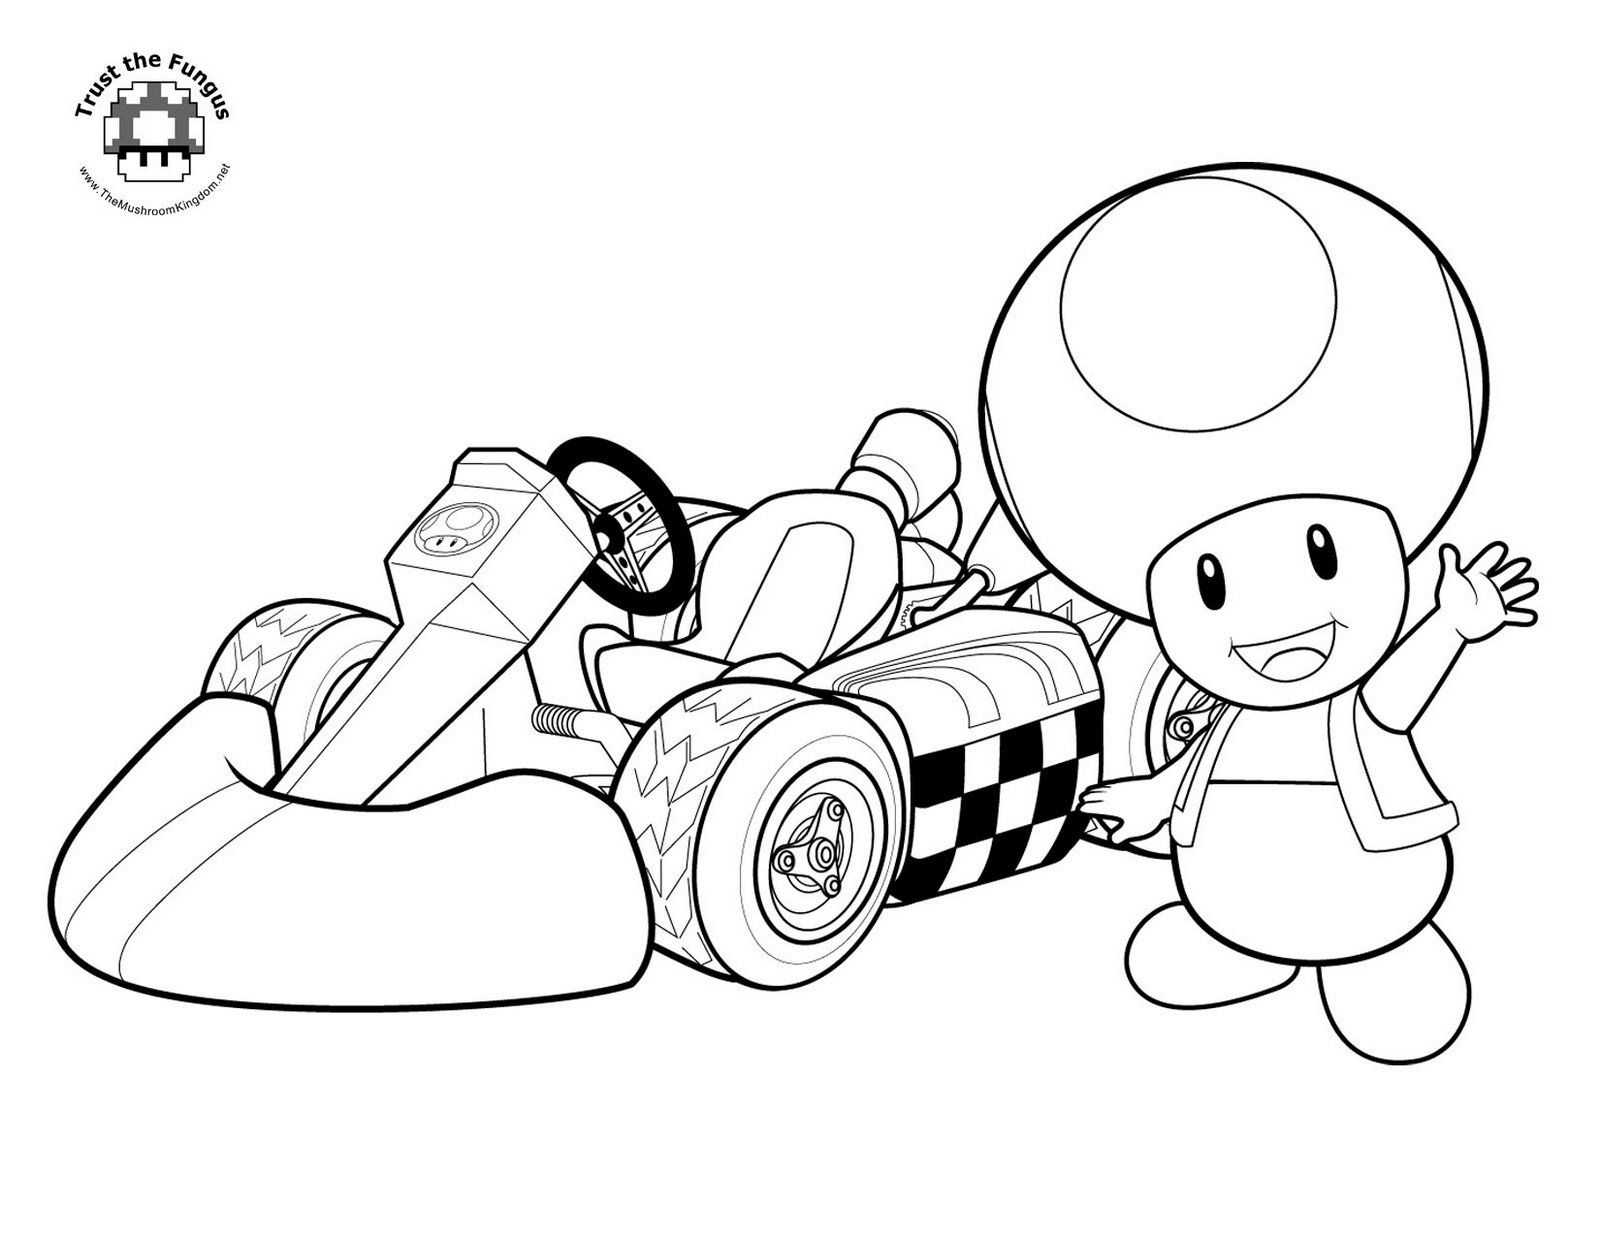 Mario-and-friends-coloring-pages | Free Coloring Pages On Masivy ...